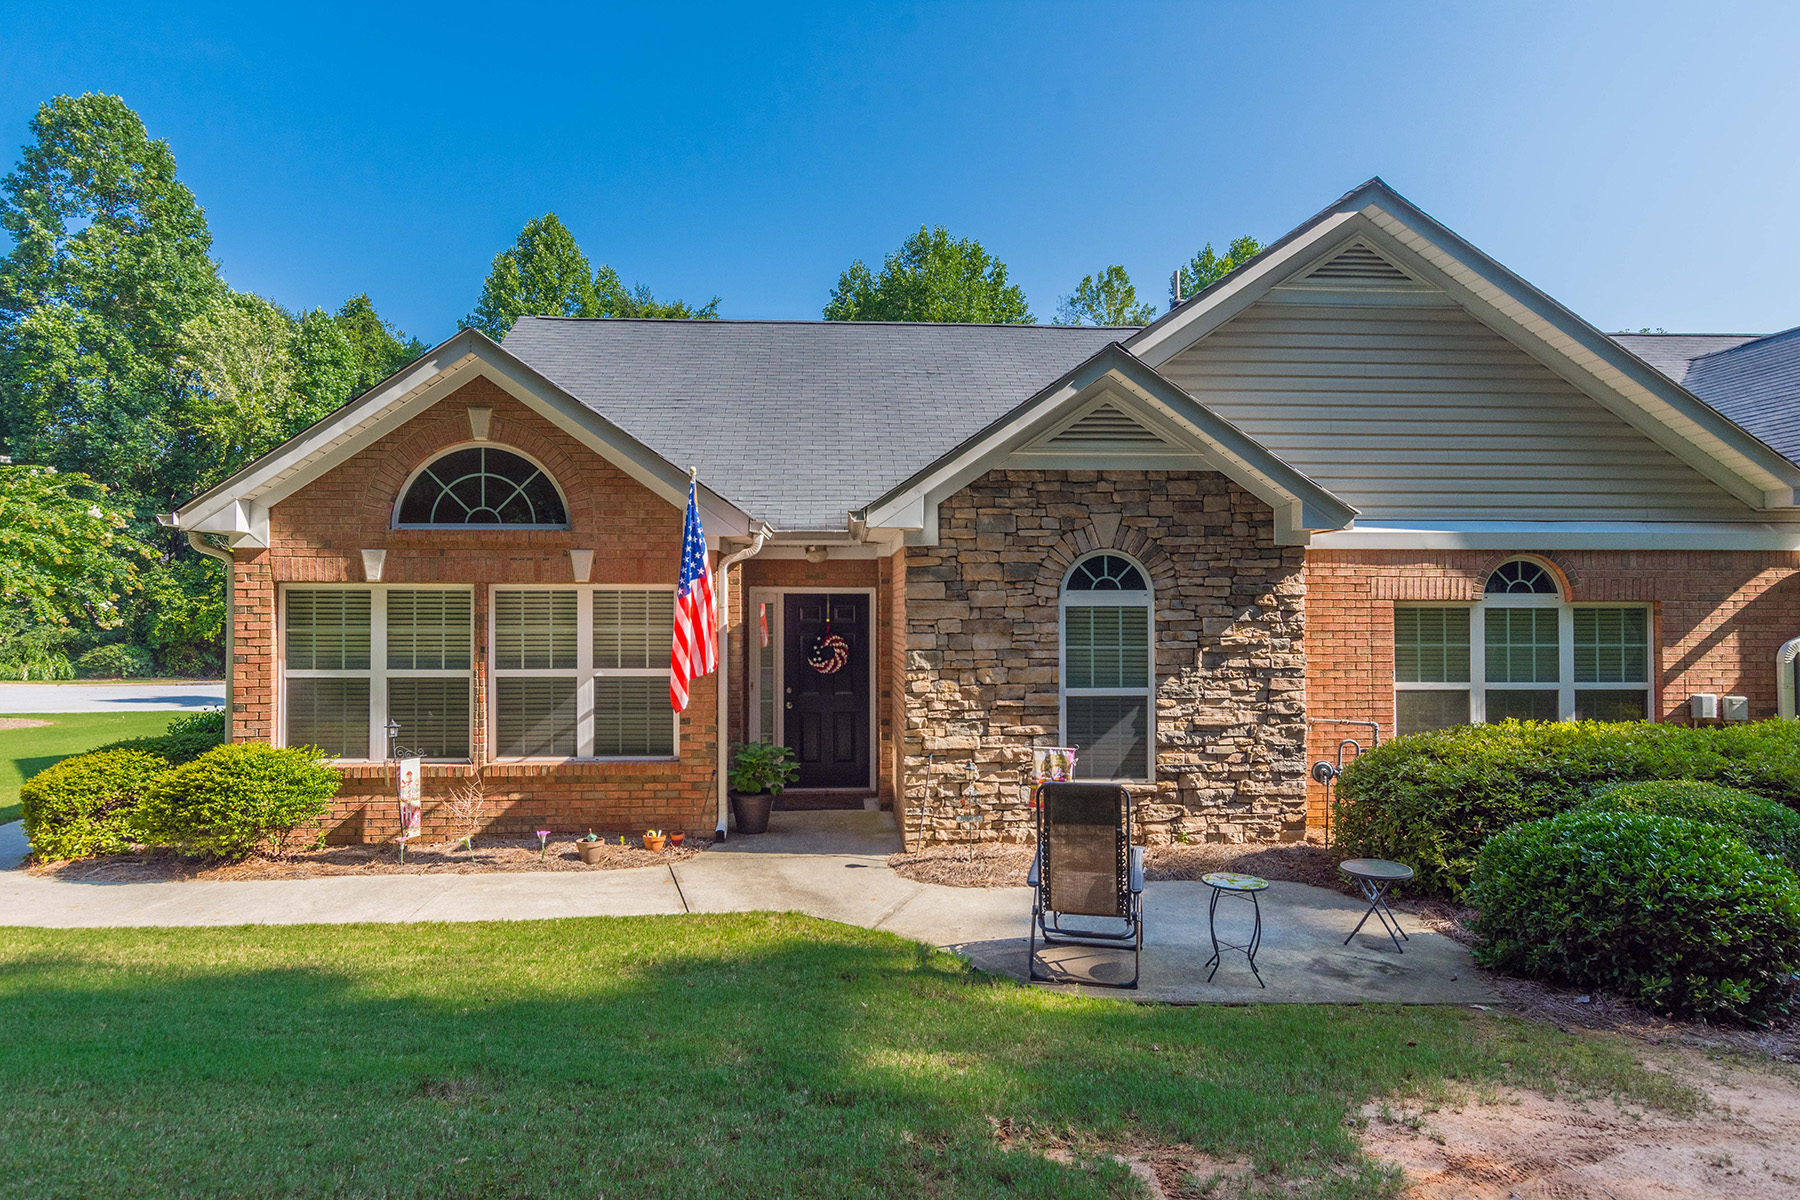 Single Family Homes for Active at Charming Residence in Villas of Seven Springs 4837 Shae Court Powder Springs, Georgia 30127 United States